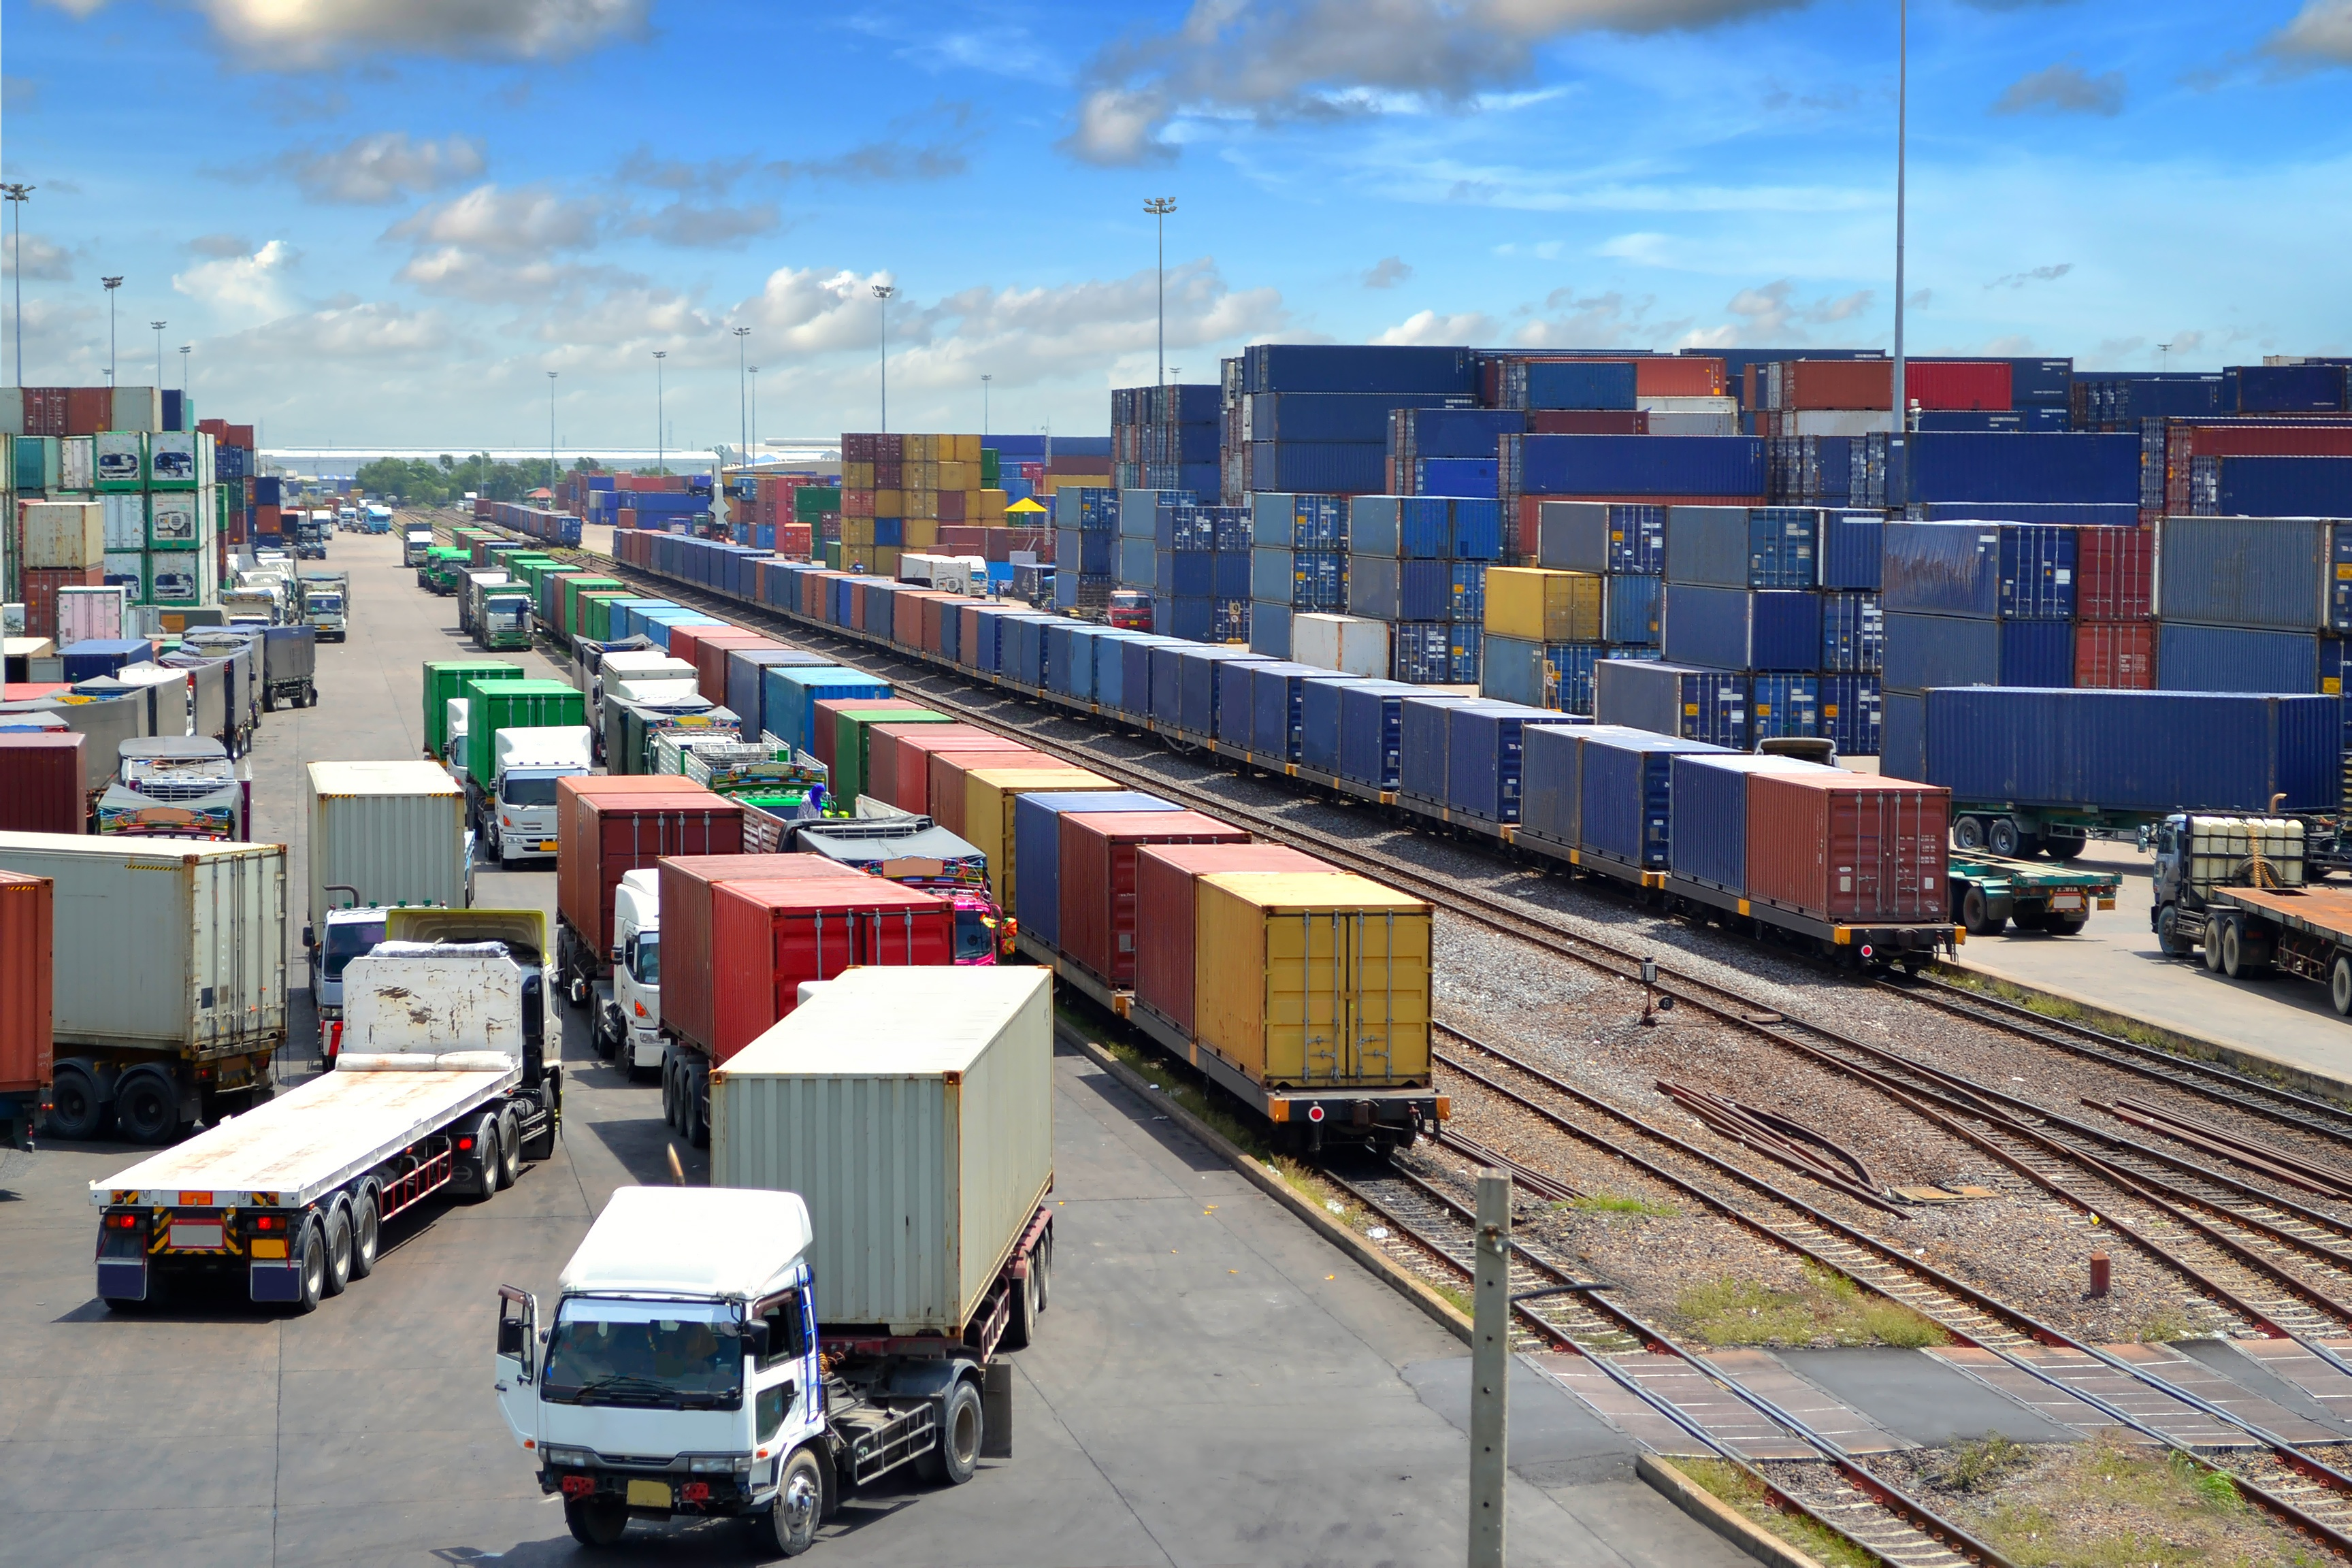 intermodal ramp trains and trucks